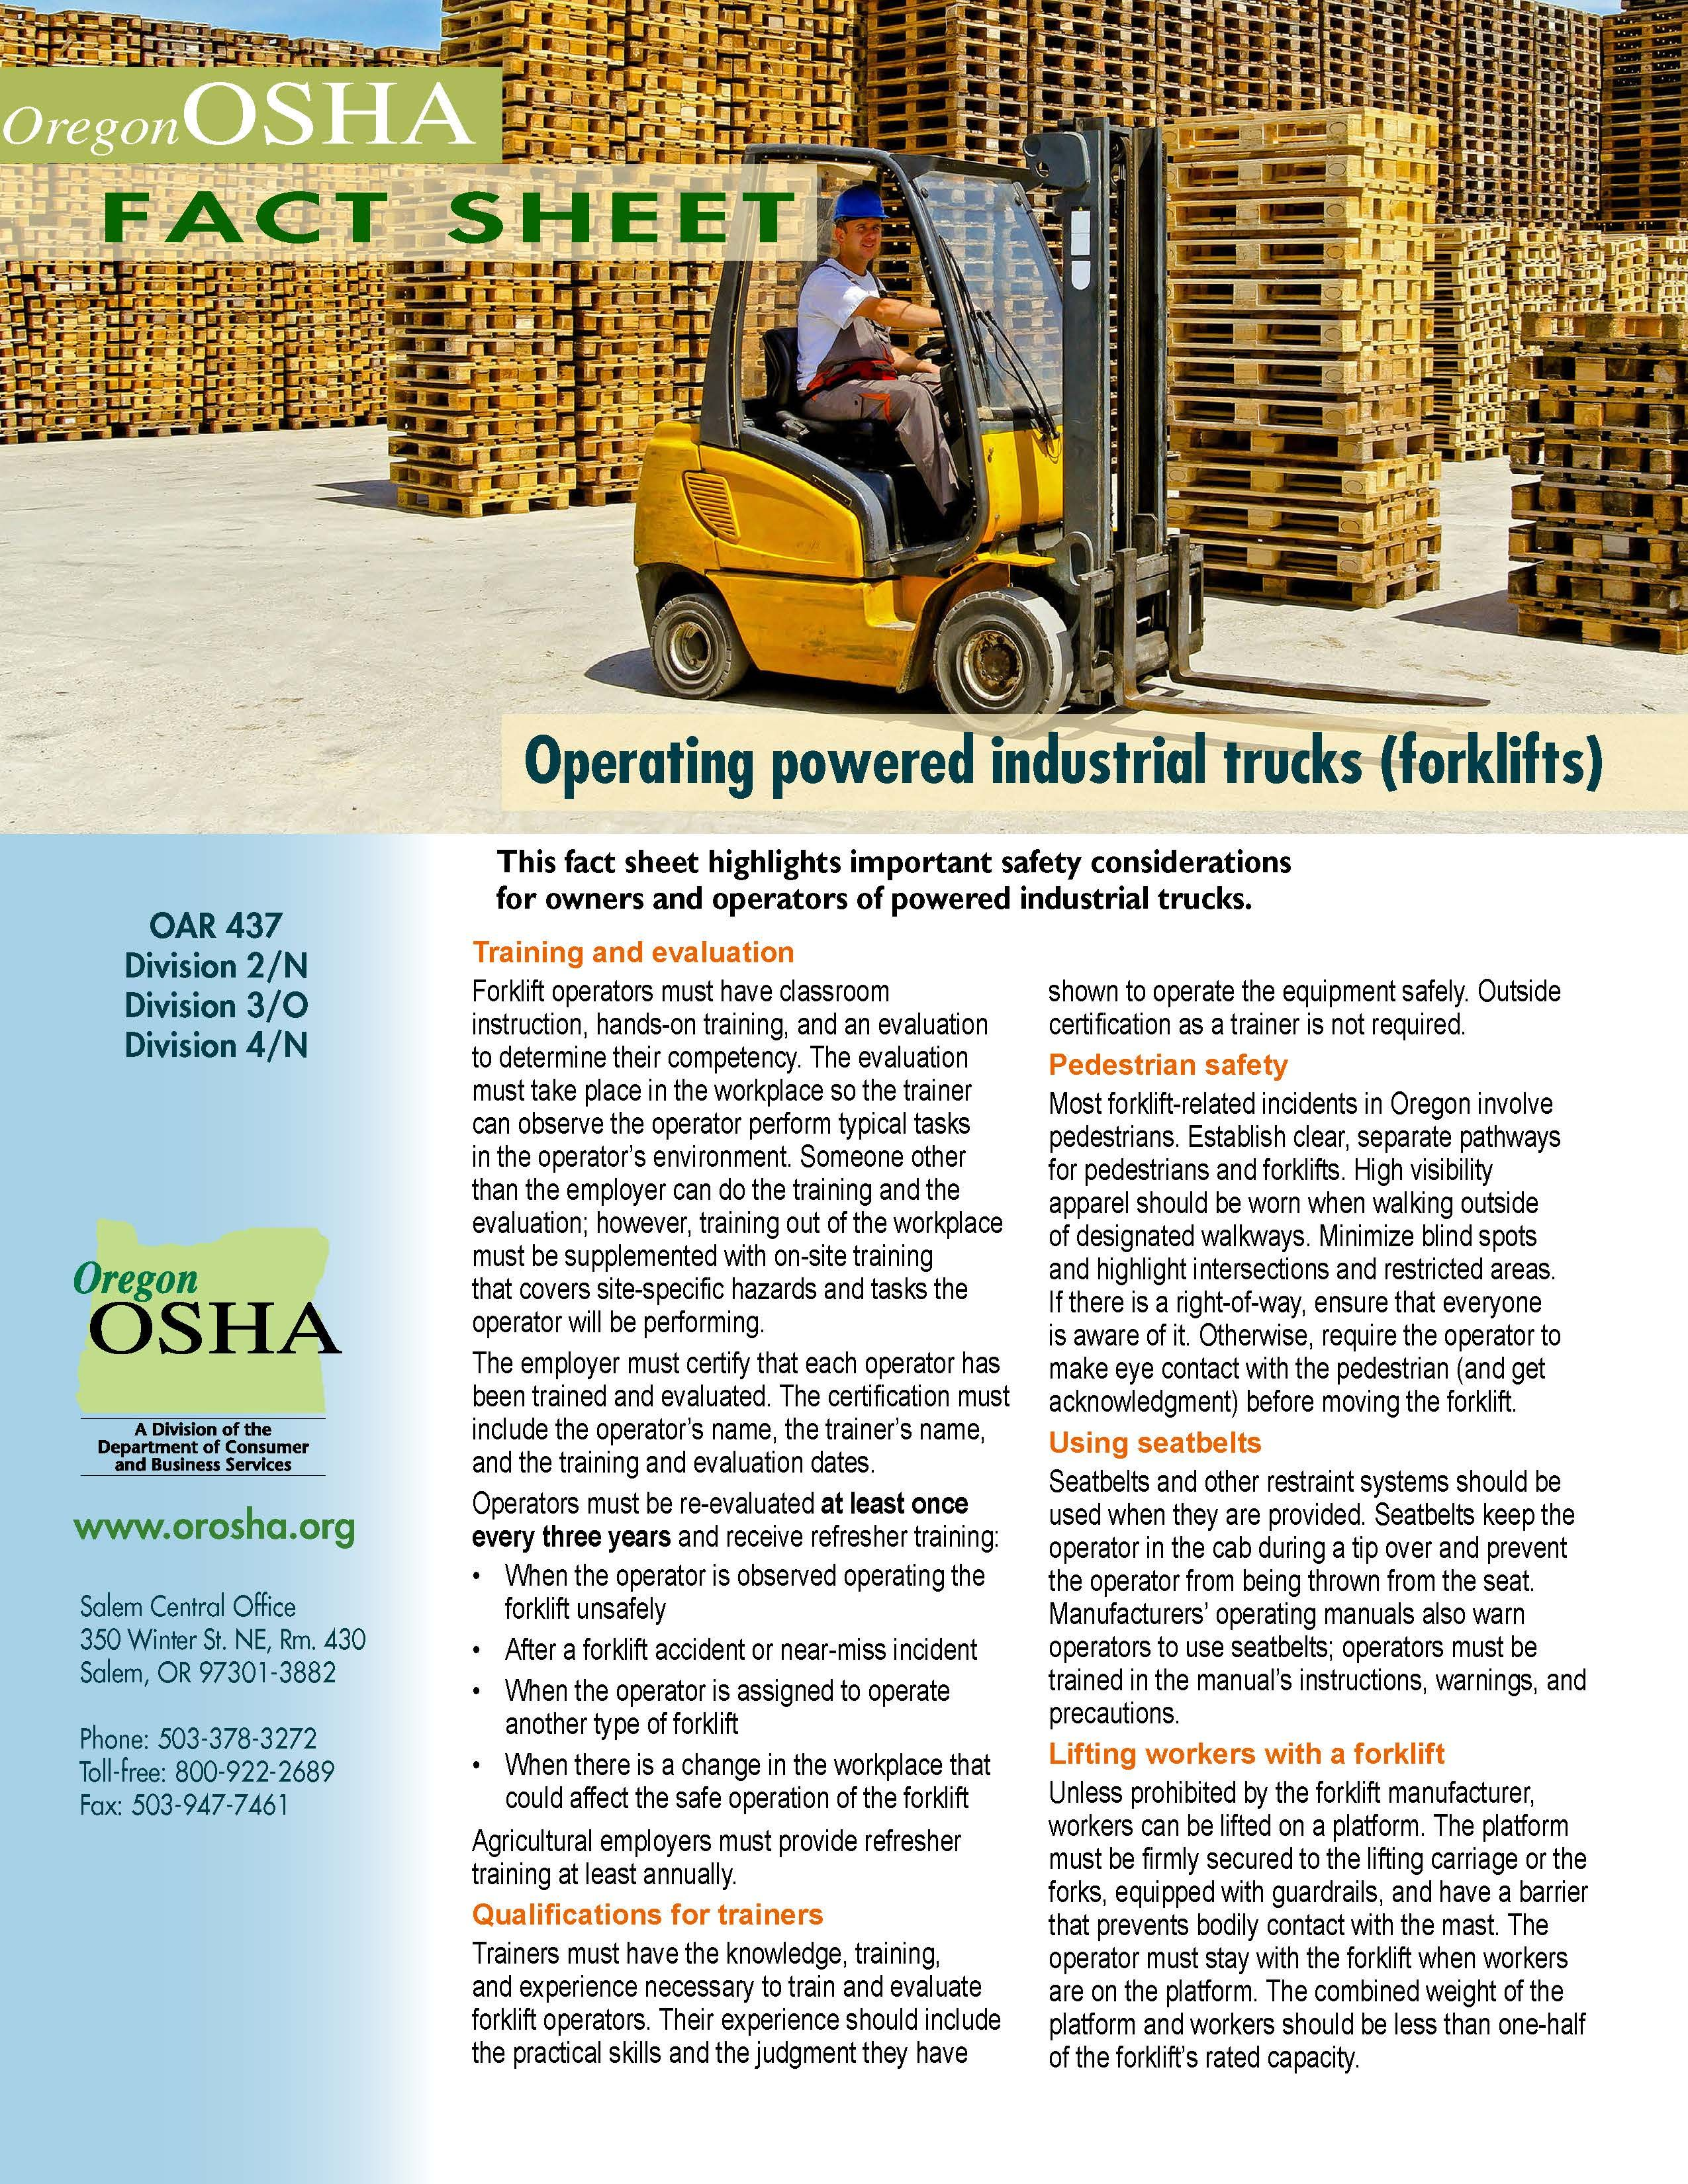 Operating powered industrial trucks (forklifts), by the Oregon Occupational Safety and Health Division